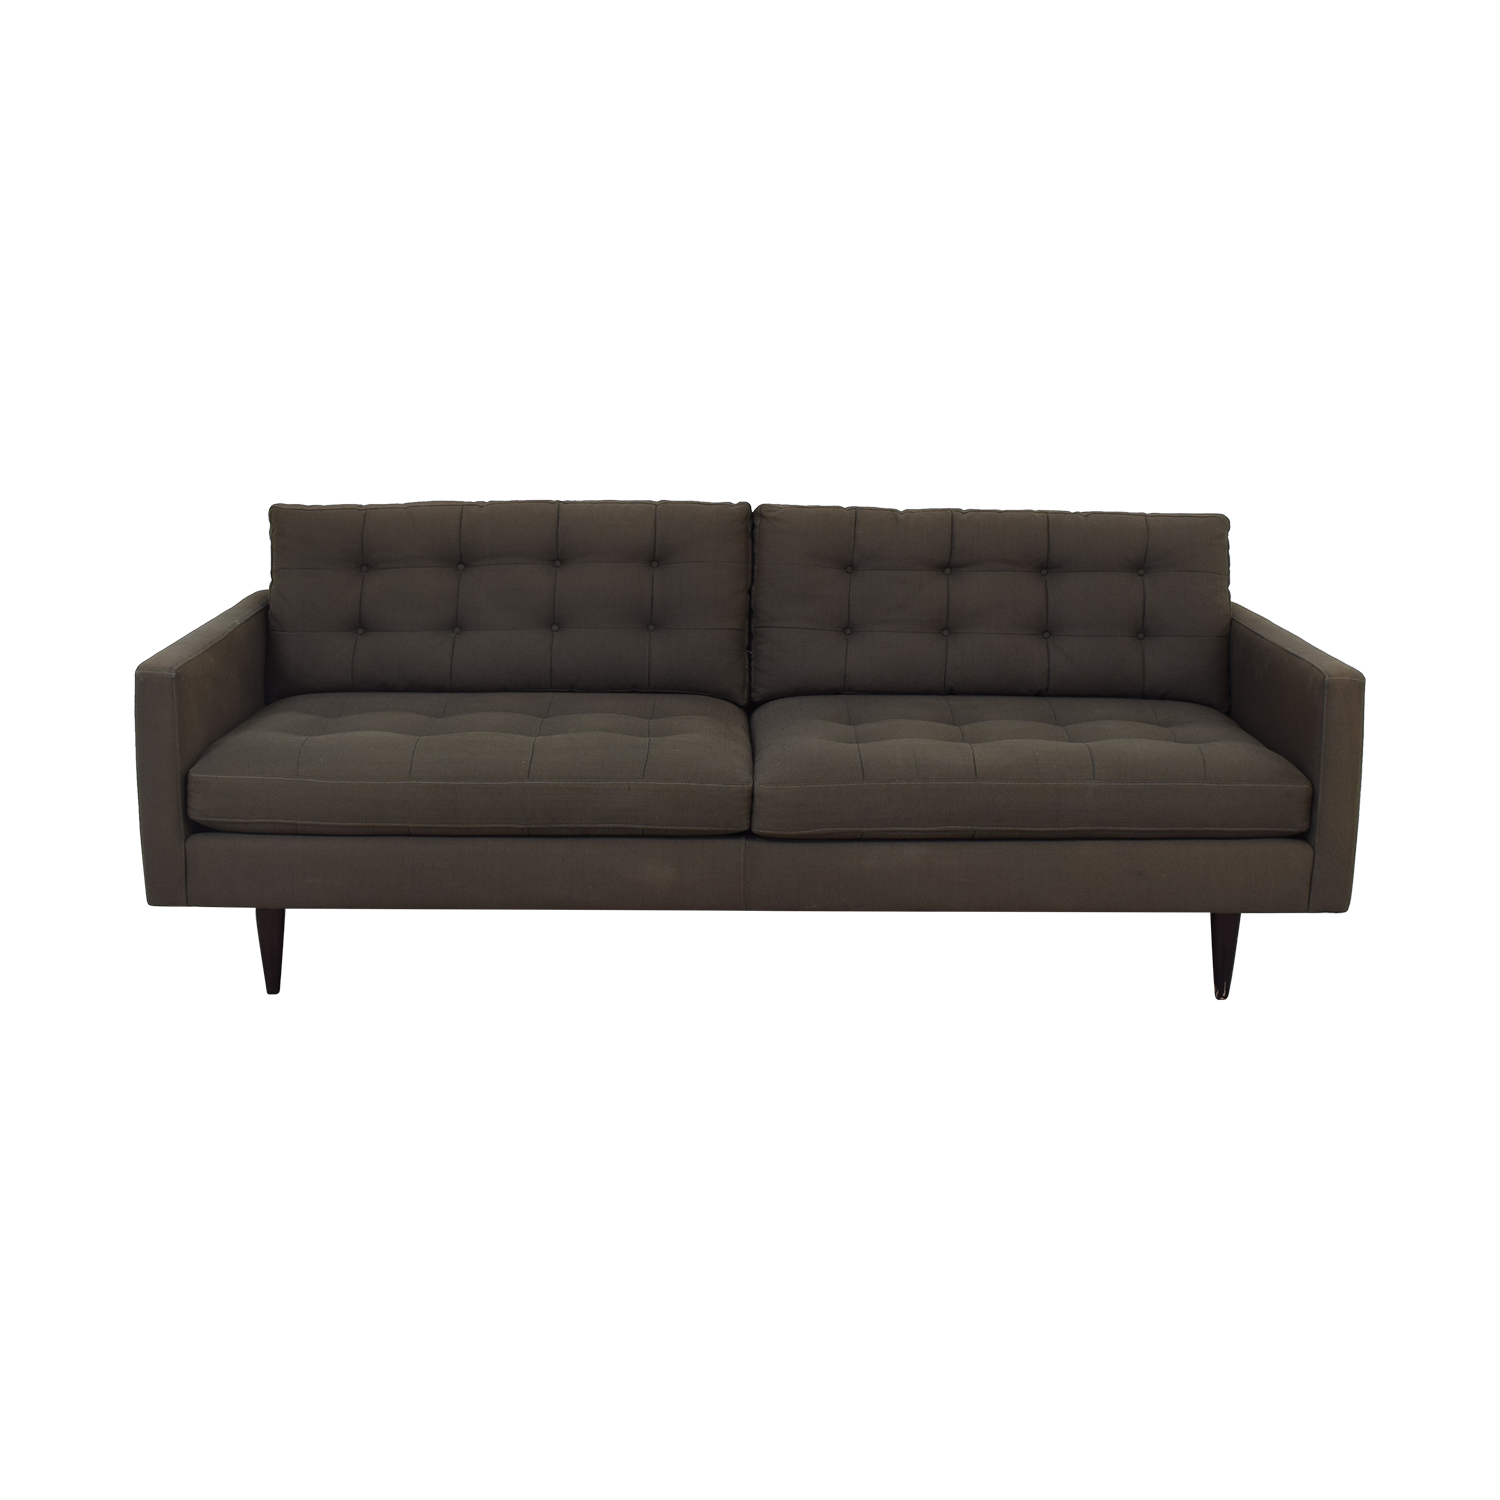 Crate & Barrel Crate & Barrel Petrie Mid-Century Sofa discount